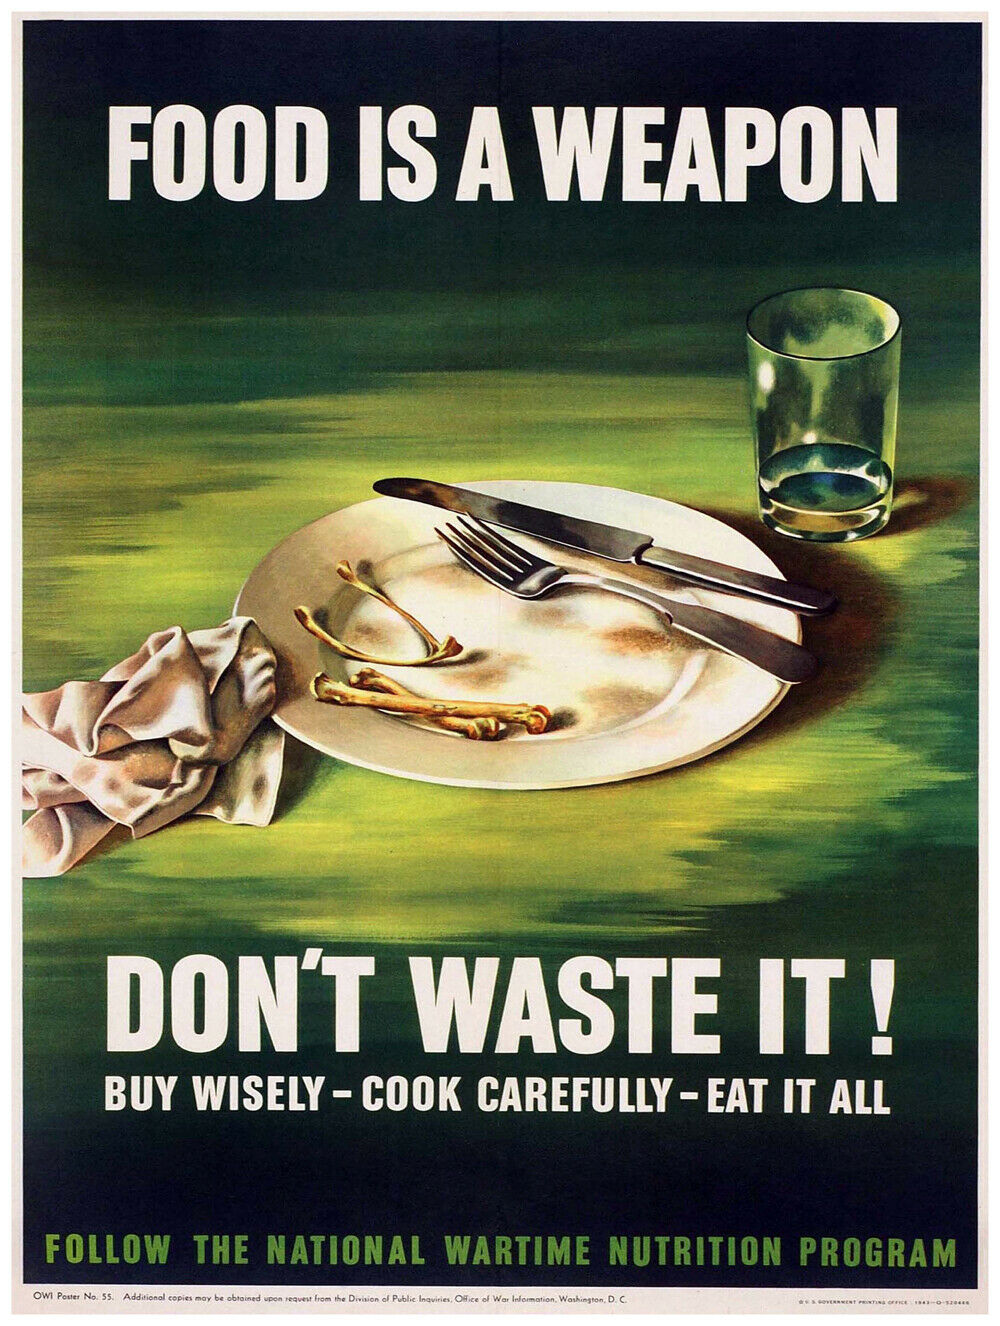 7642.Decoration Poster.Home Room art design print.Food is a weapon.Don't waste